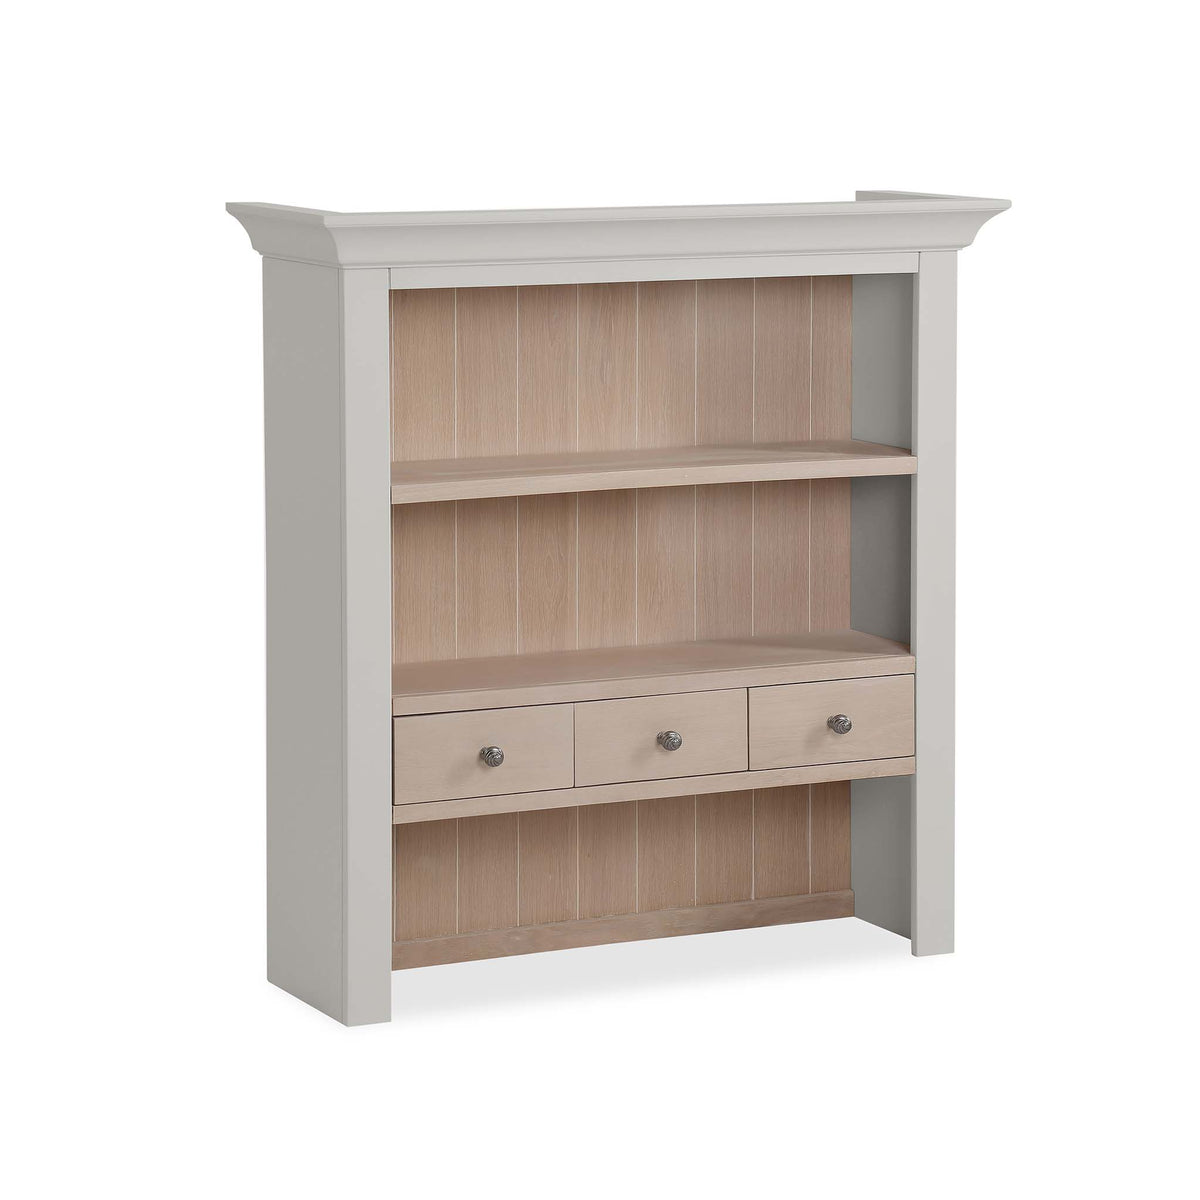 Melrose Grey Small Open Dresser Hutch from Roseland Furniture